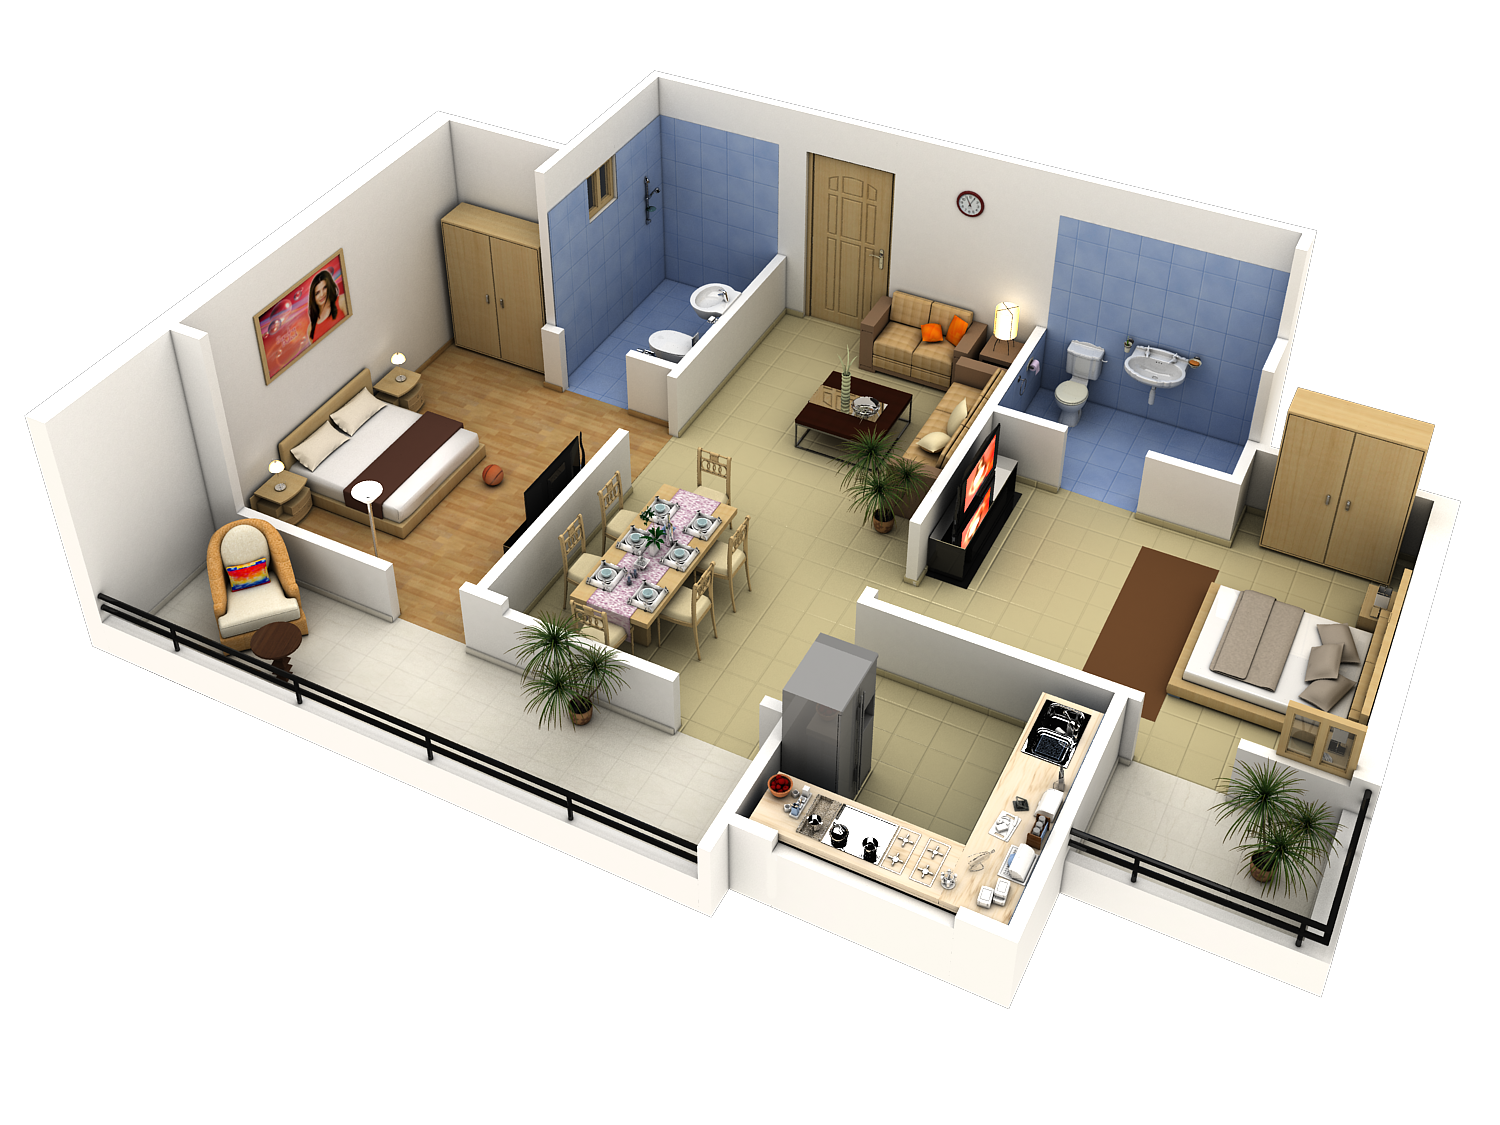 Apartment floor plan cad block apartment design ideas for 2 bedroom layout design